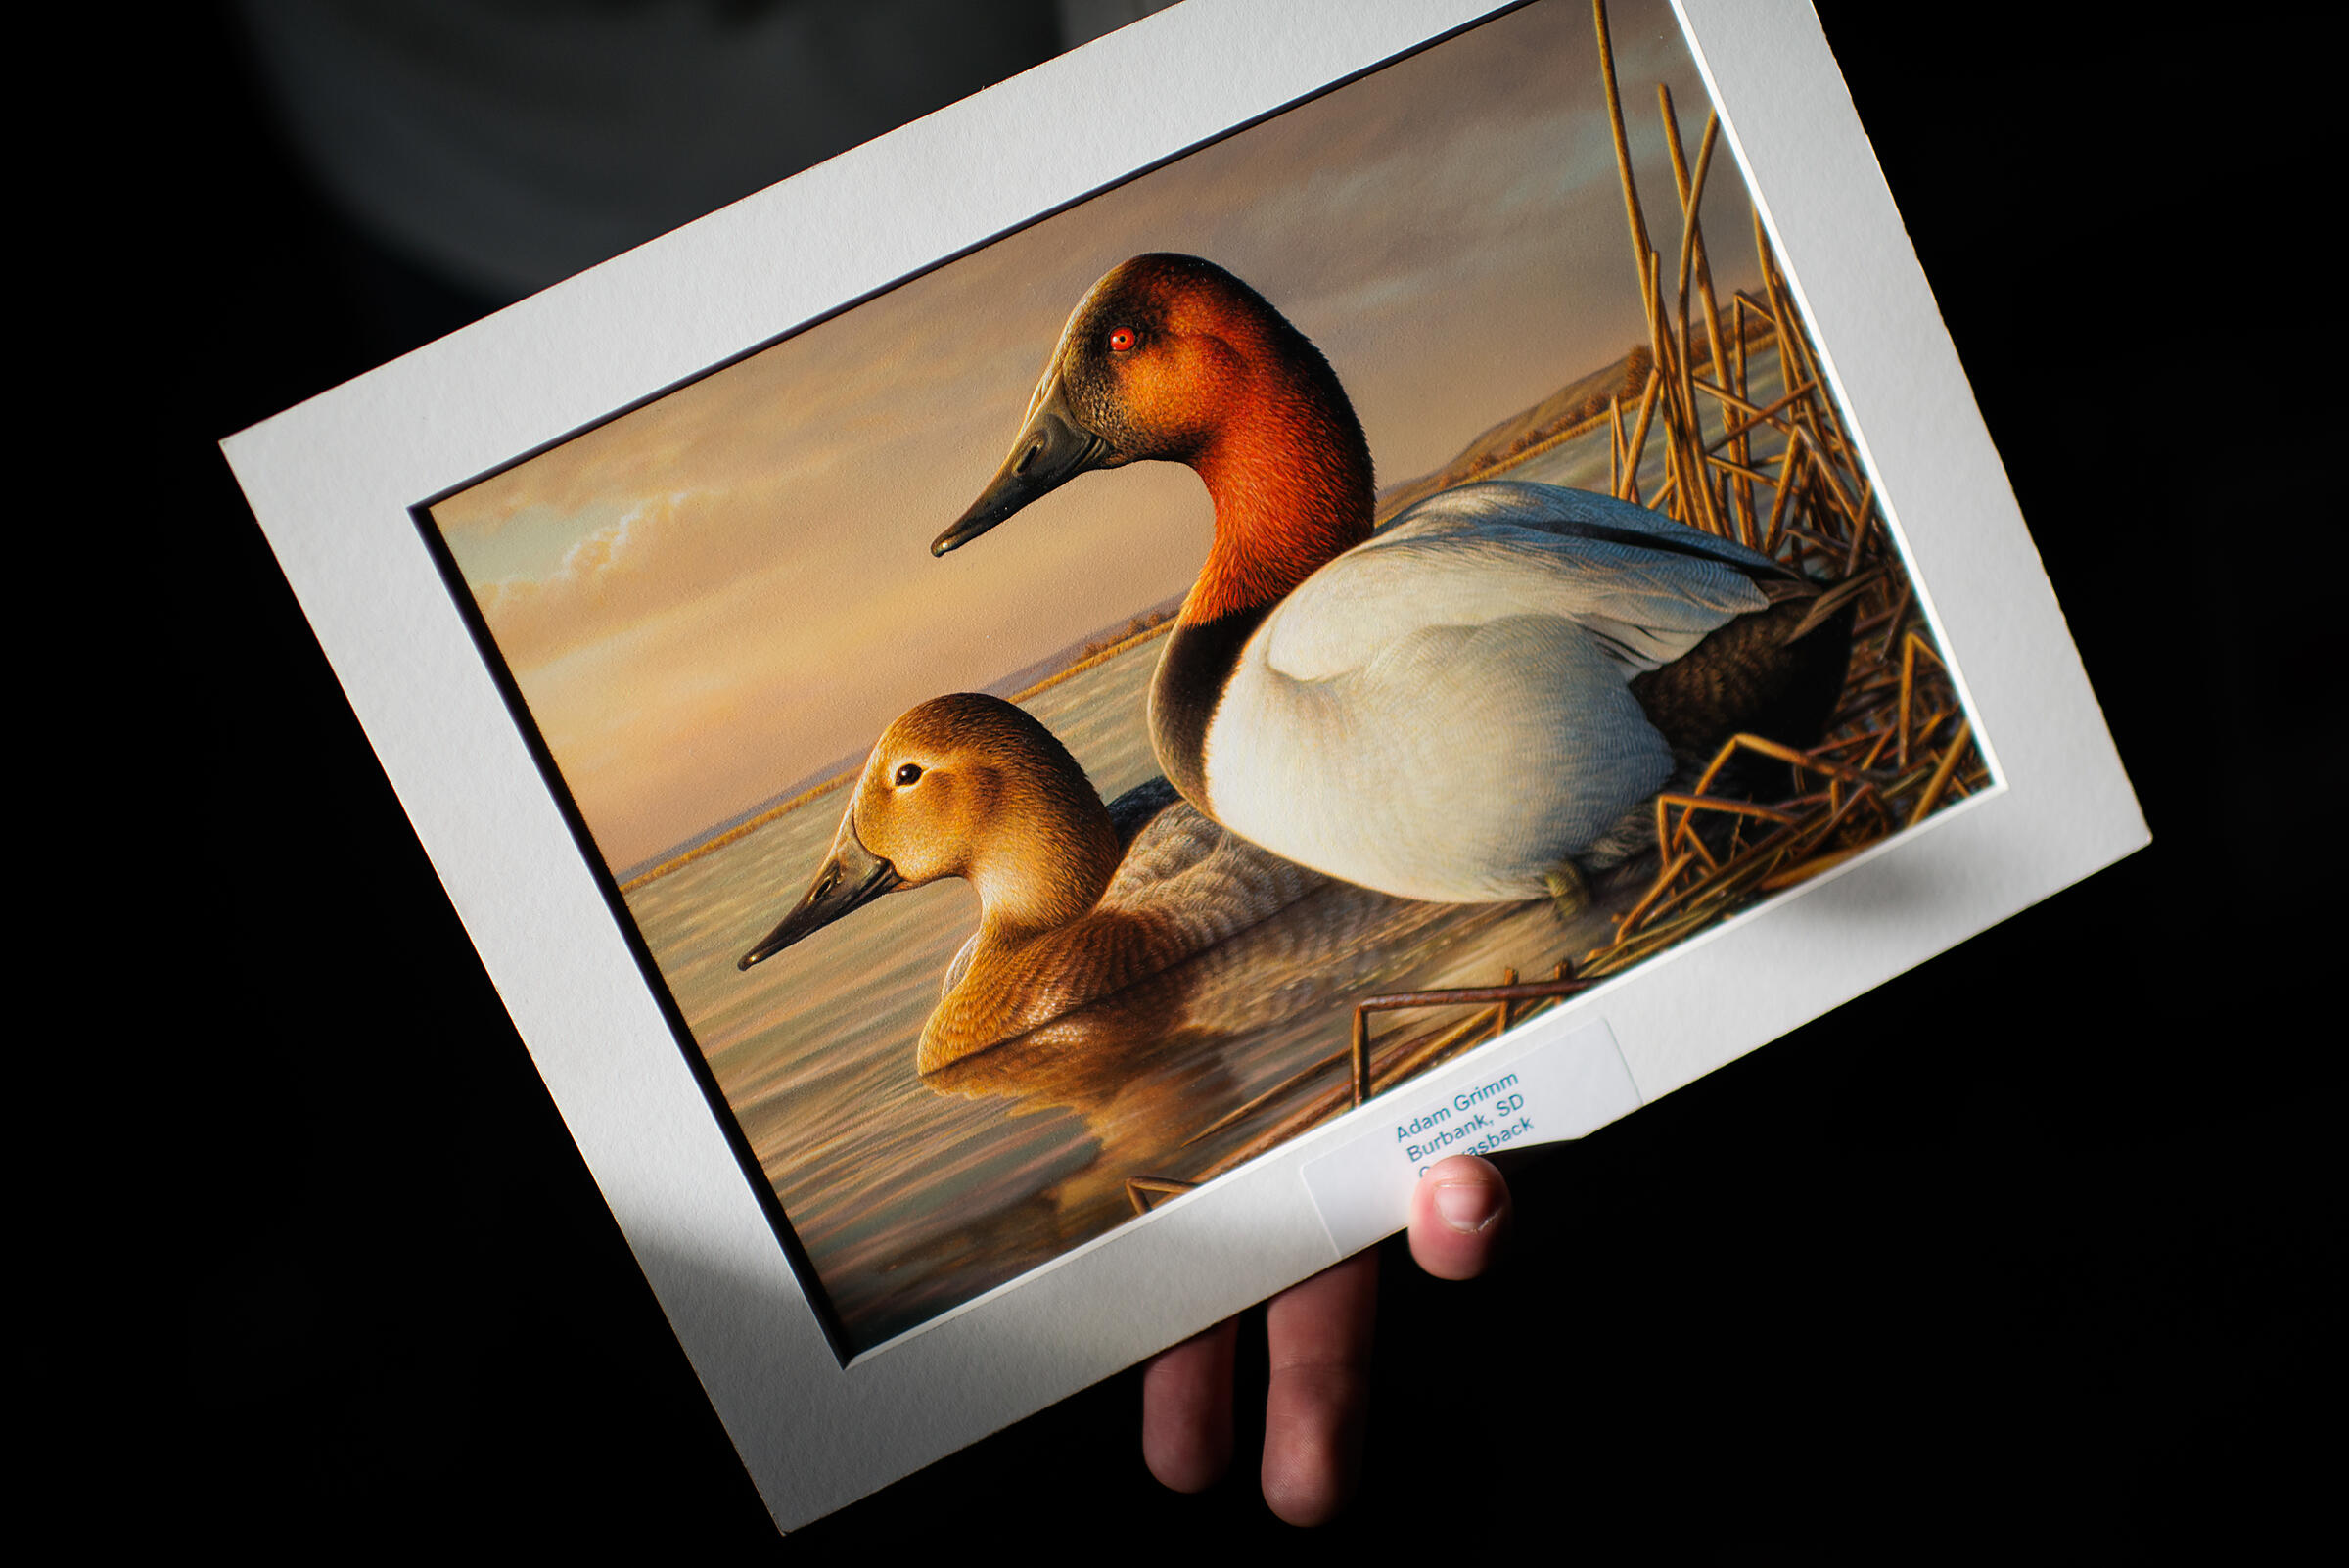 Grimm's rendering of a pair of Canvasbacks, which won the 2013 contest, is the product of hundreds of hours of photography and painting. Jon Lowenstein